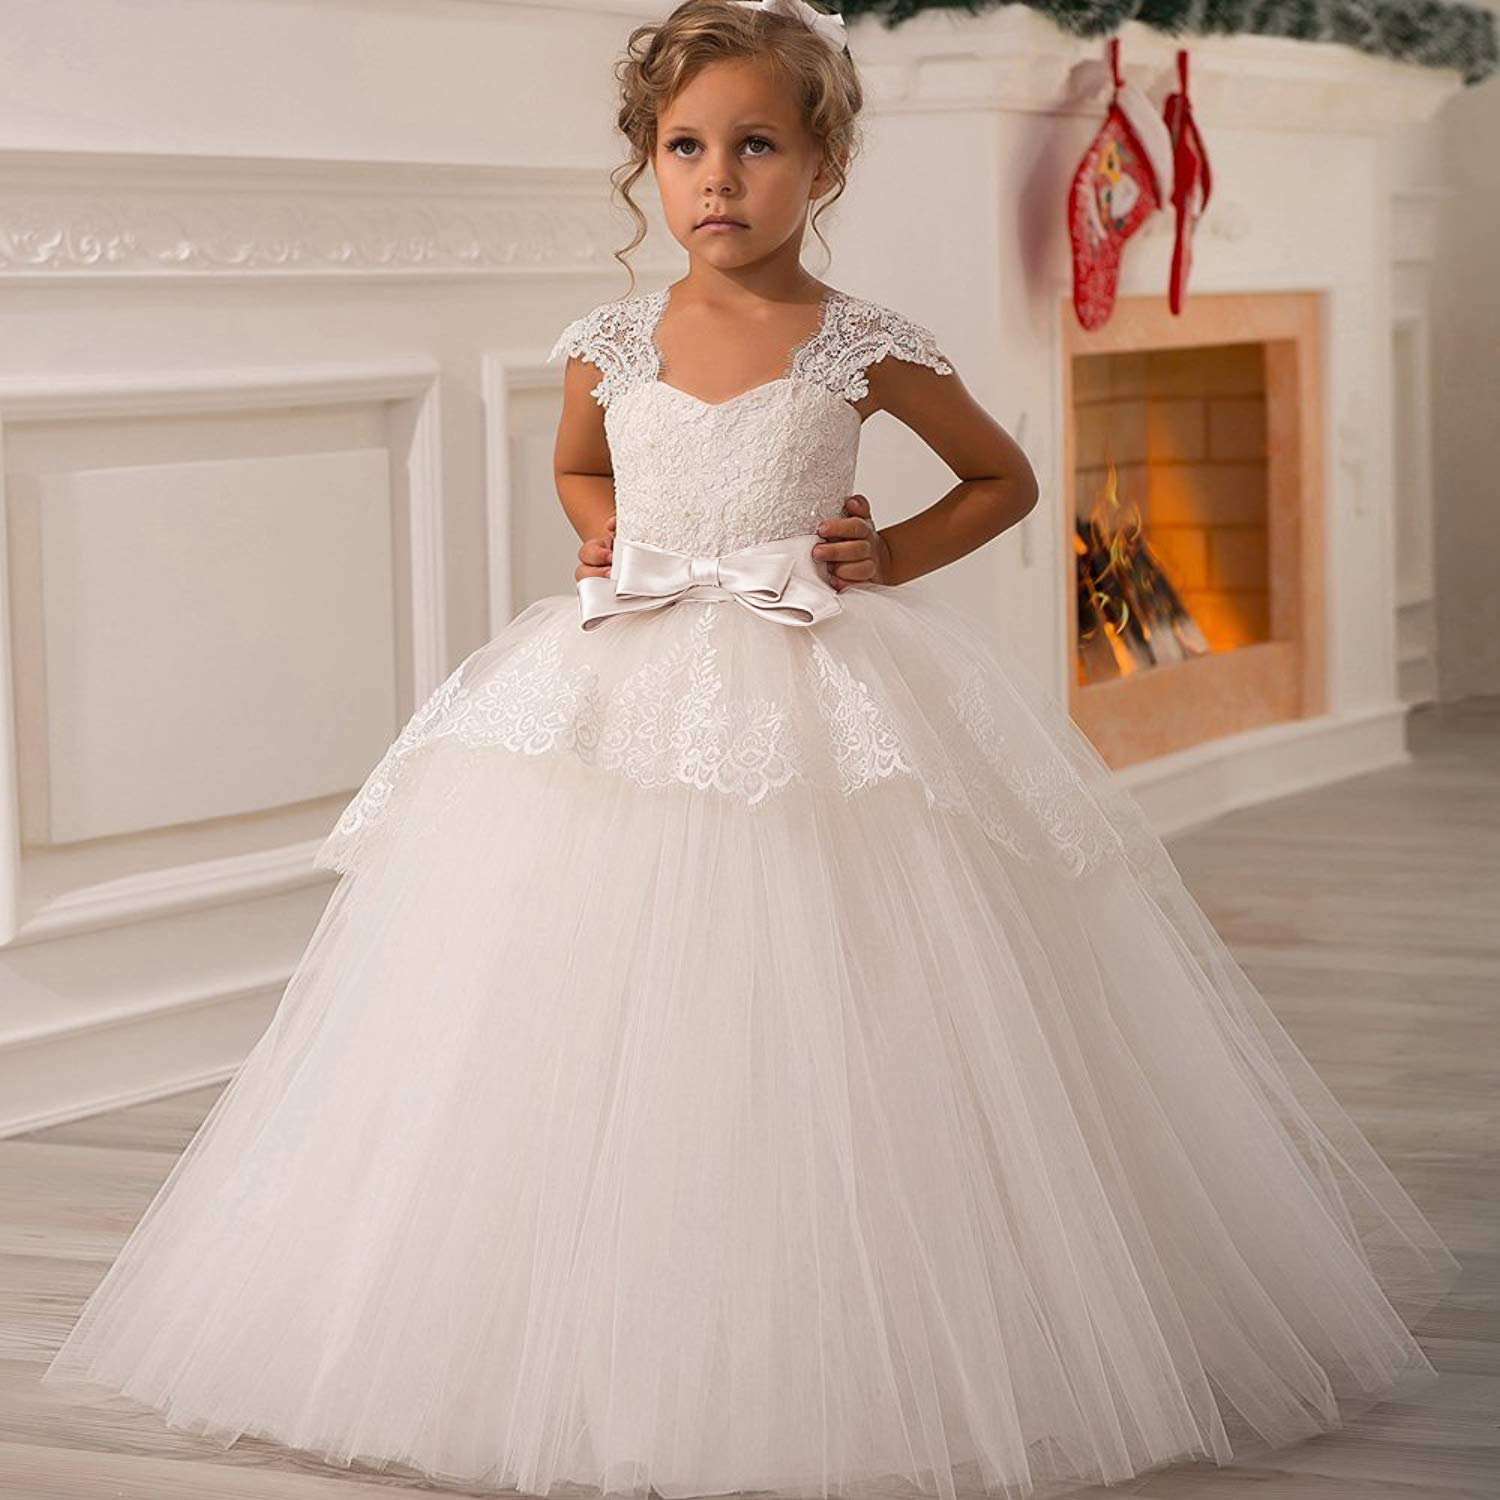 f3b76070463 Amazon.com  Elegant Lace Appliques Cap Sleeves Tulle Flower Girl Dress 1-14  Years Old  Clothing